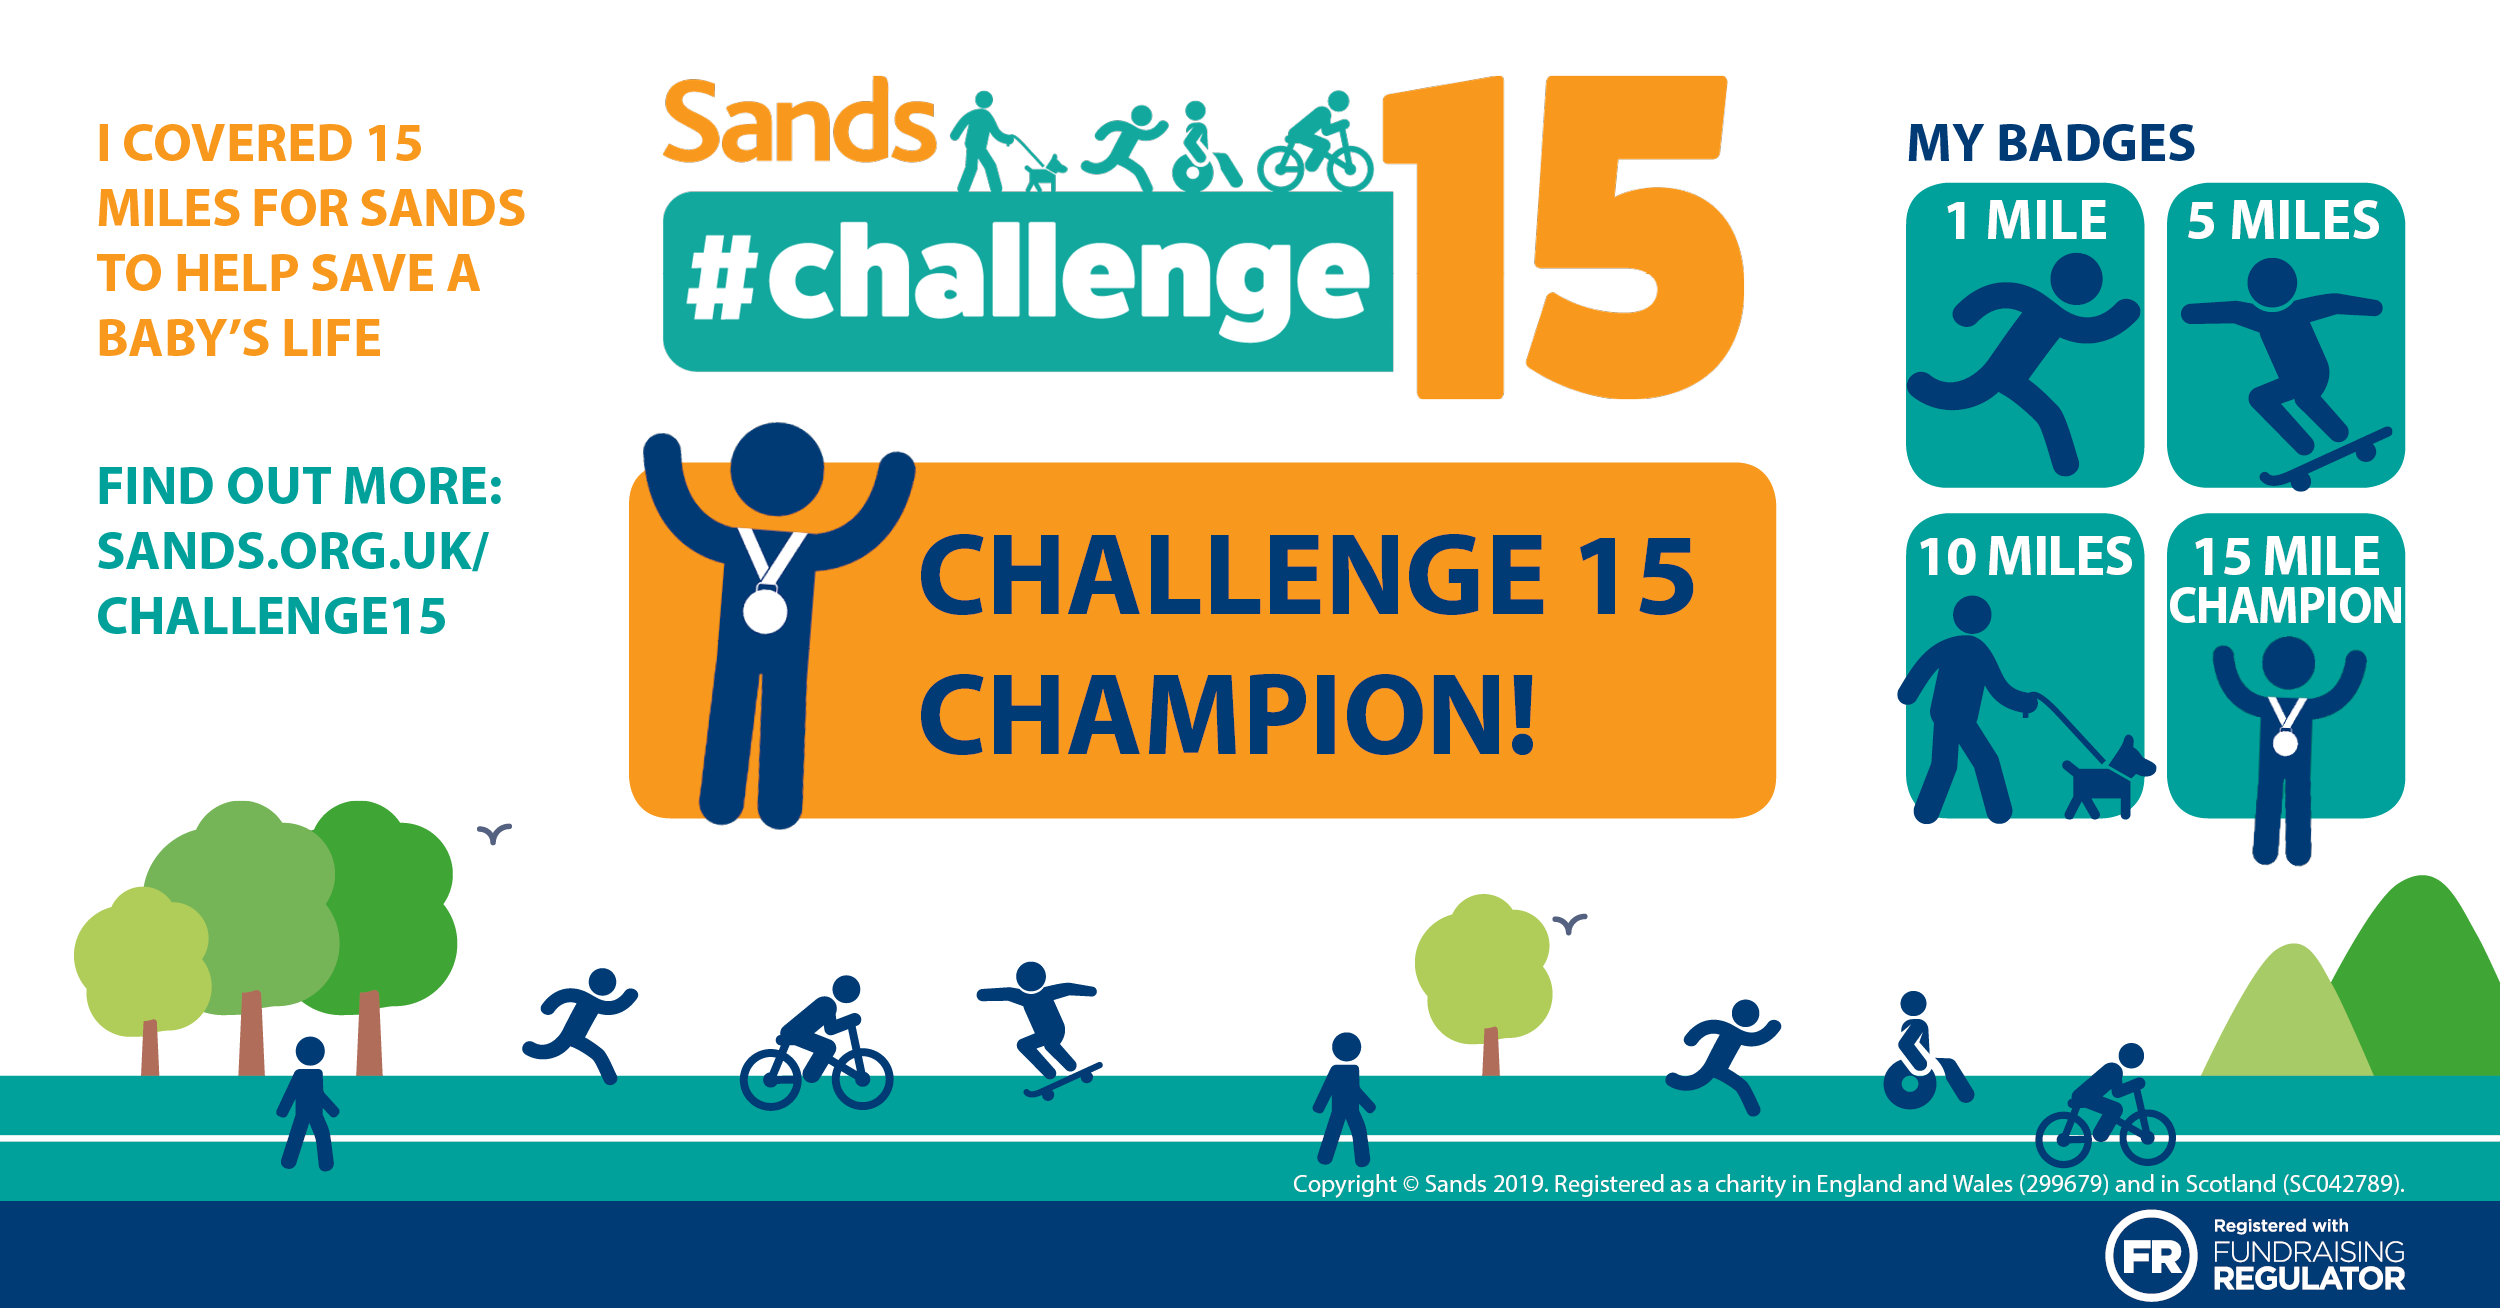 #Challenge15 - You are a Champion badge - Facebook